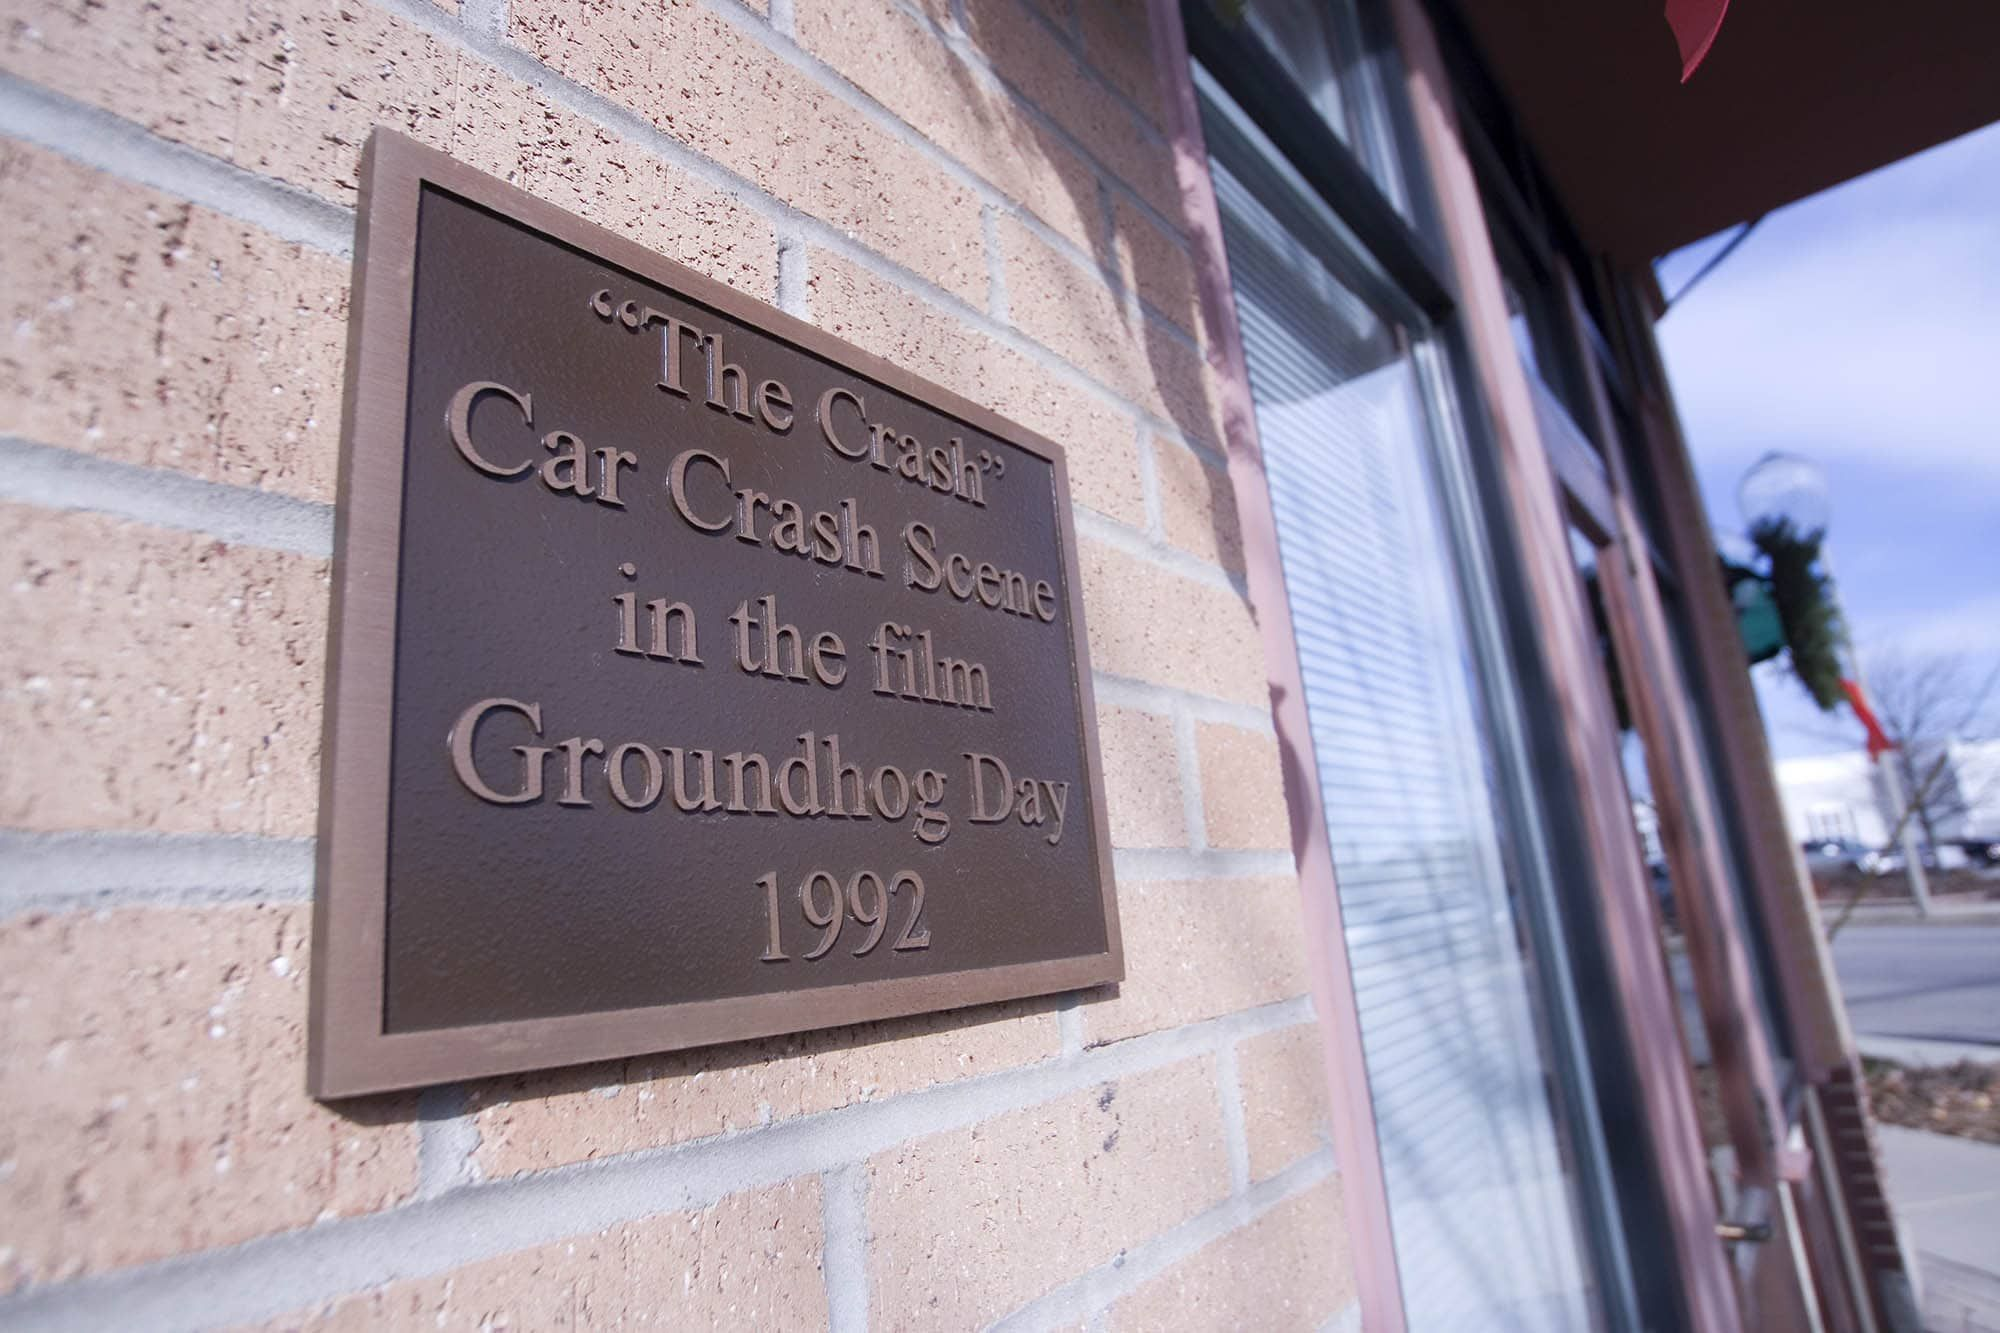 Happy Groundhog Day from Woodstock, Illinois! | Roadside Attractions